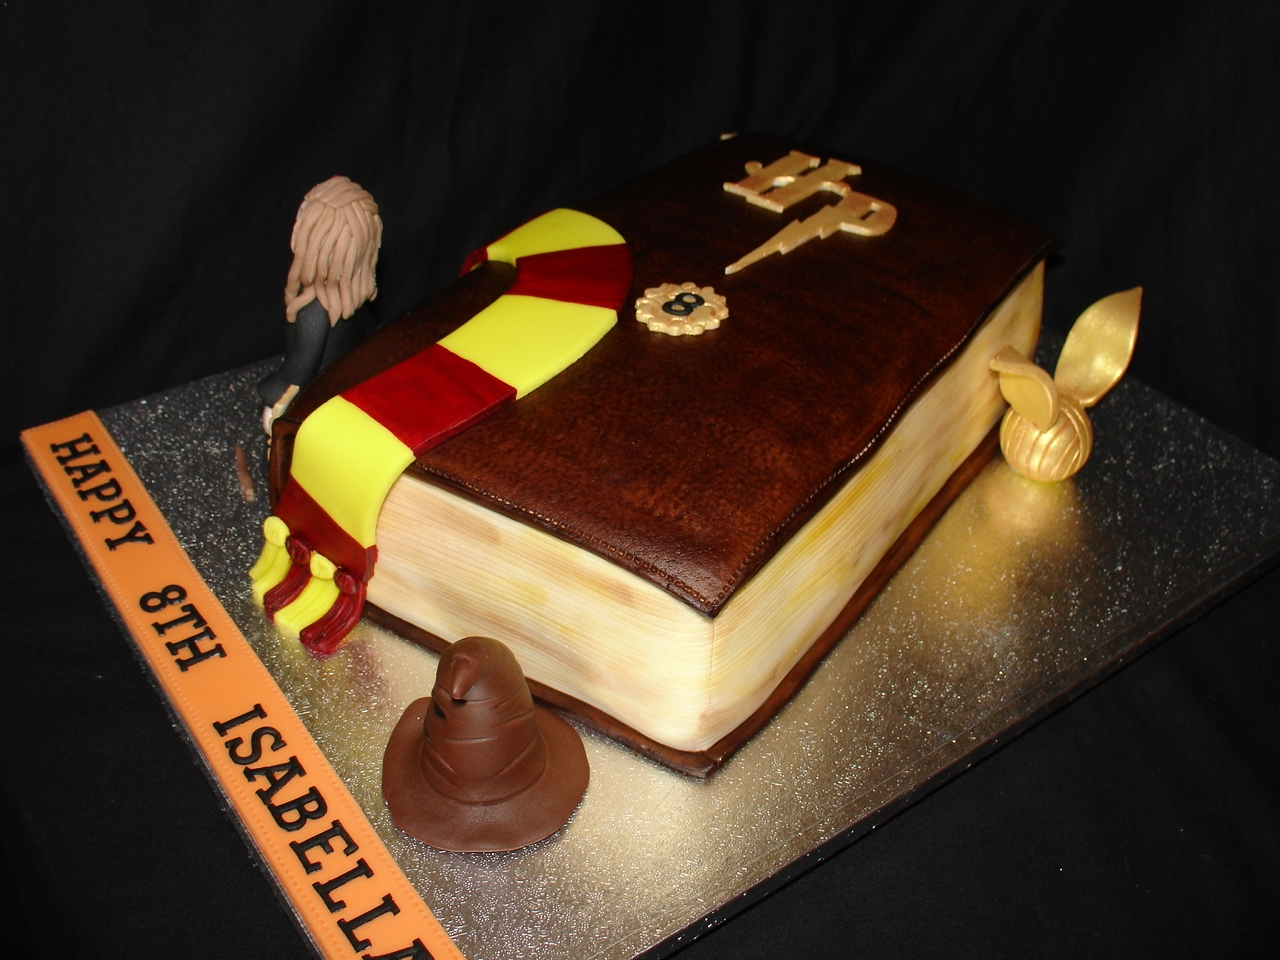 Harry Potter Hermione Granger Themed Fondant Cake